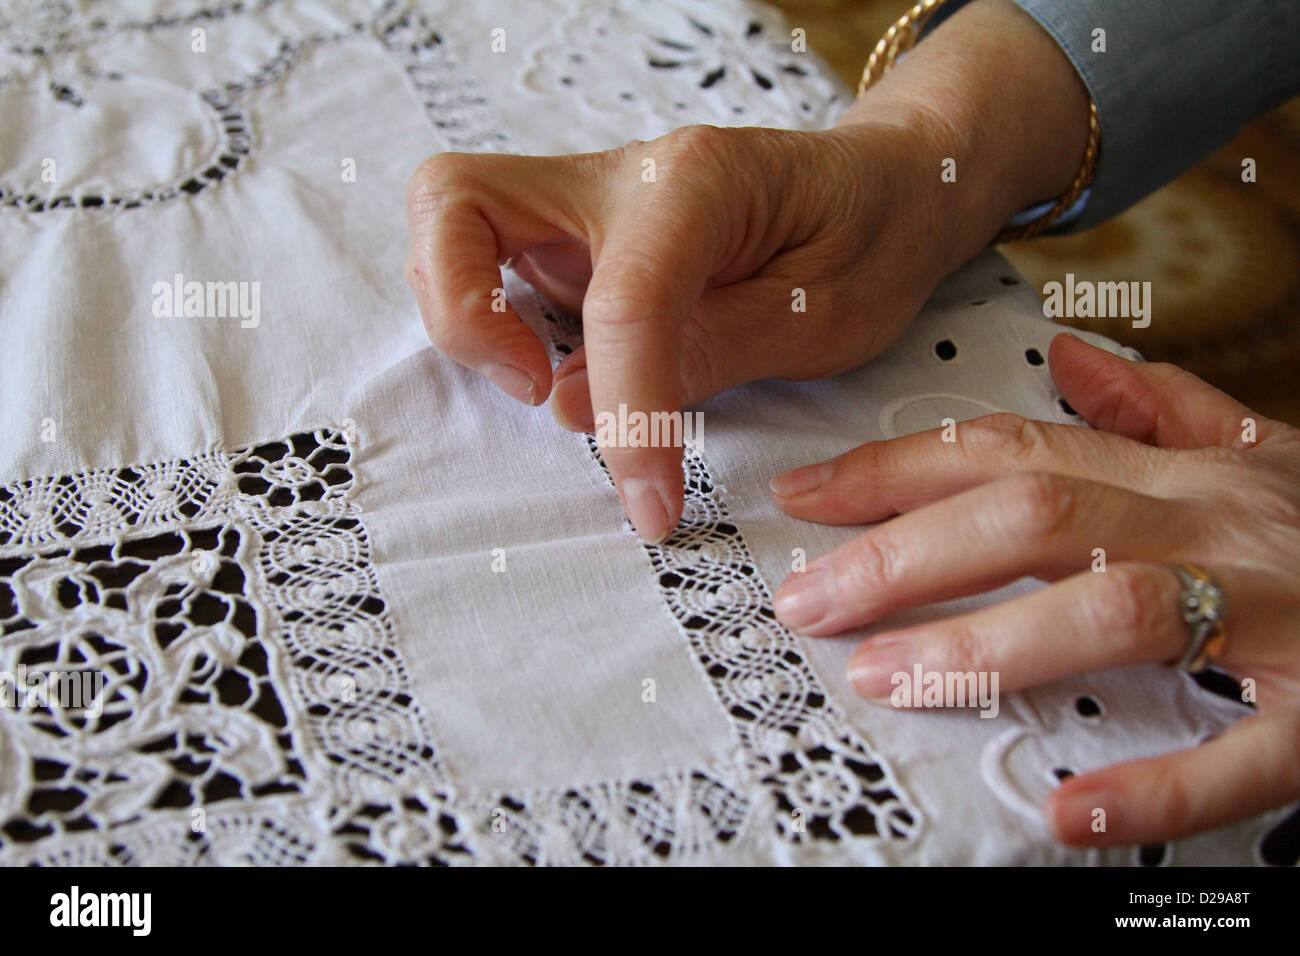 A hand Embroidered tablecloth from the previous century made in Tripoli, Libya, A Jewish Star of David is hidden - Stock Image